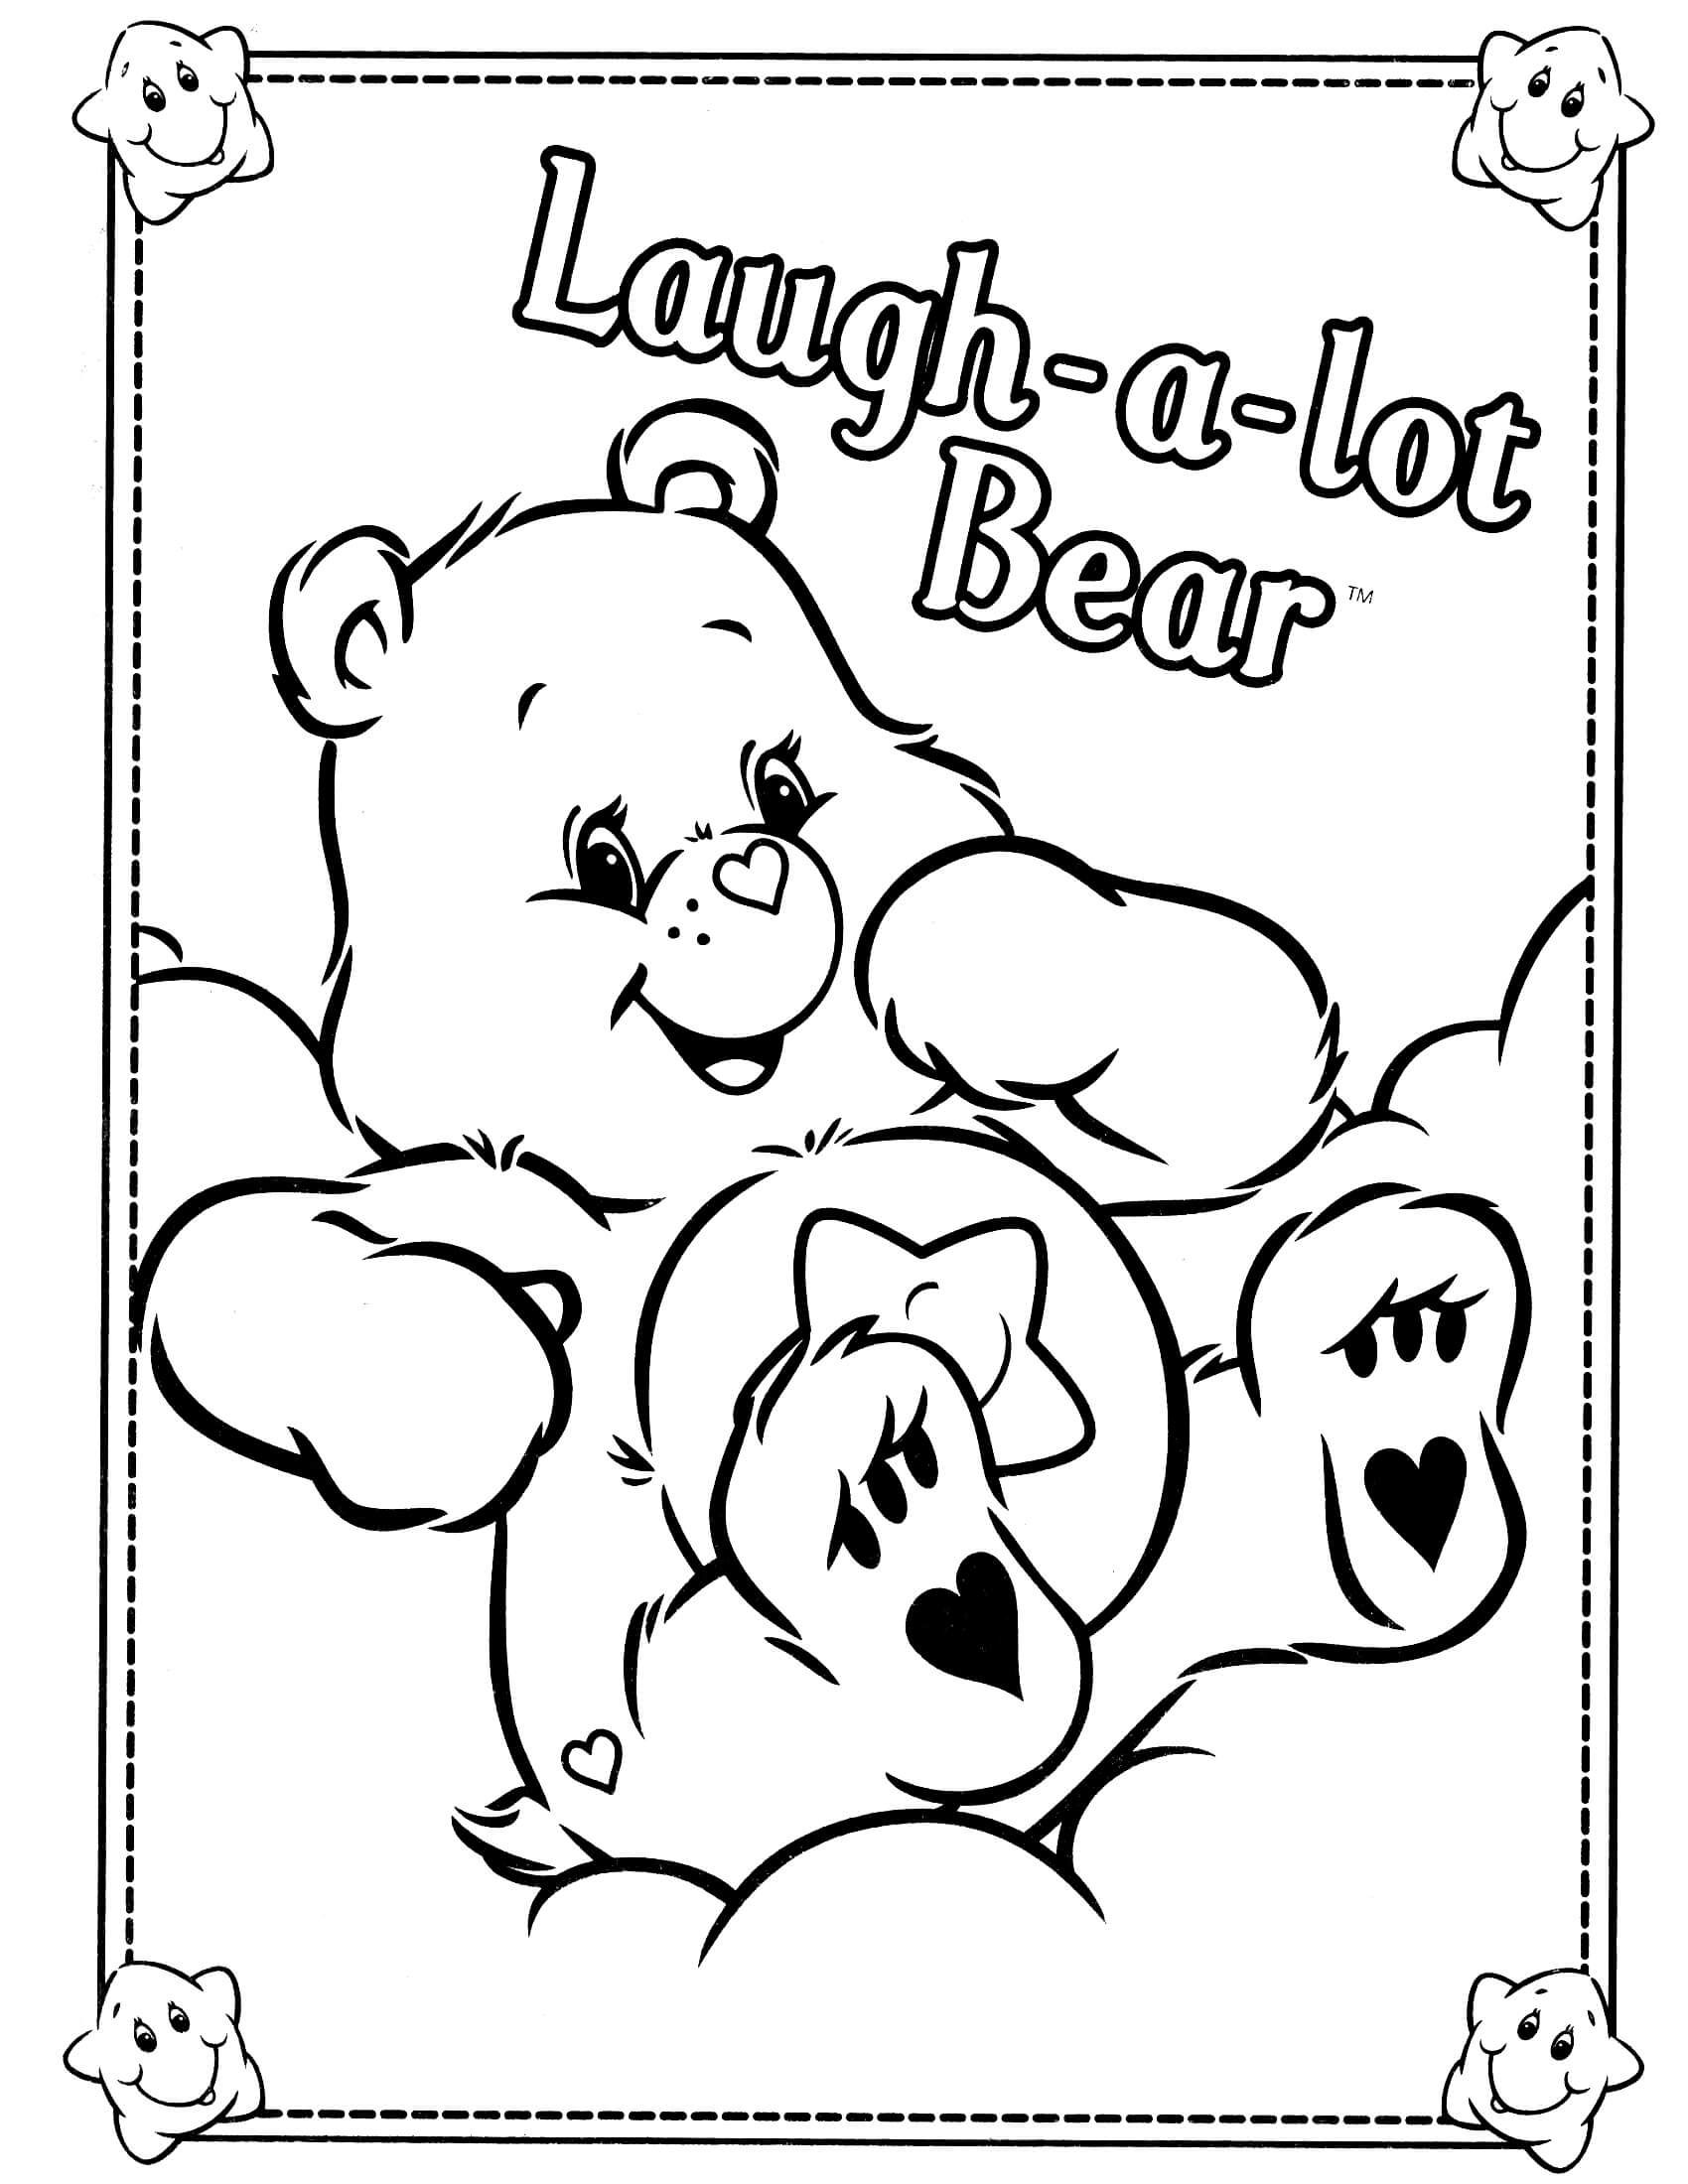 Laugh A Lot Bear Bear Coloring Pages Cartoon Coloring Pages Teddy Bear Coloring Pages